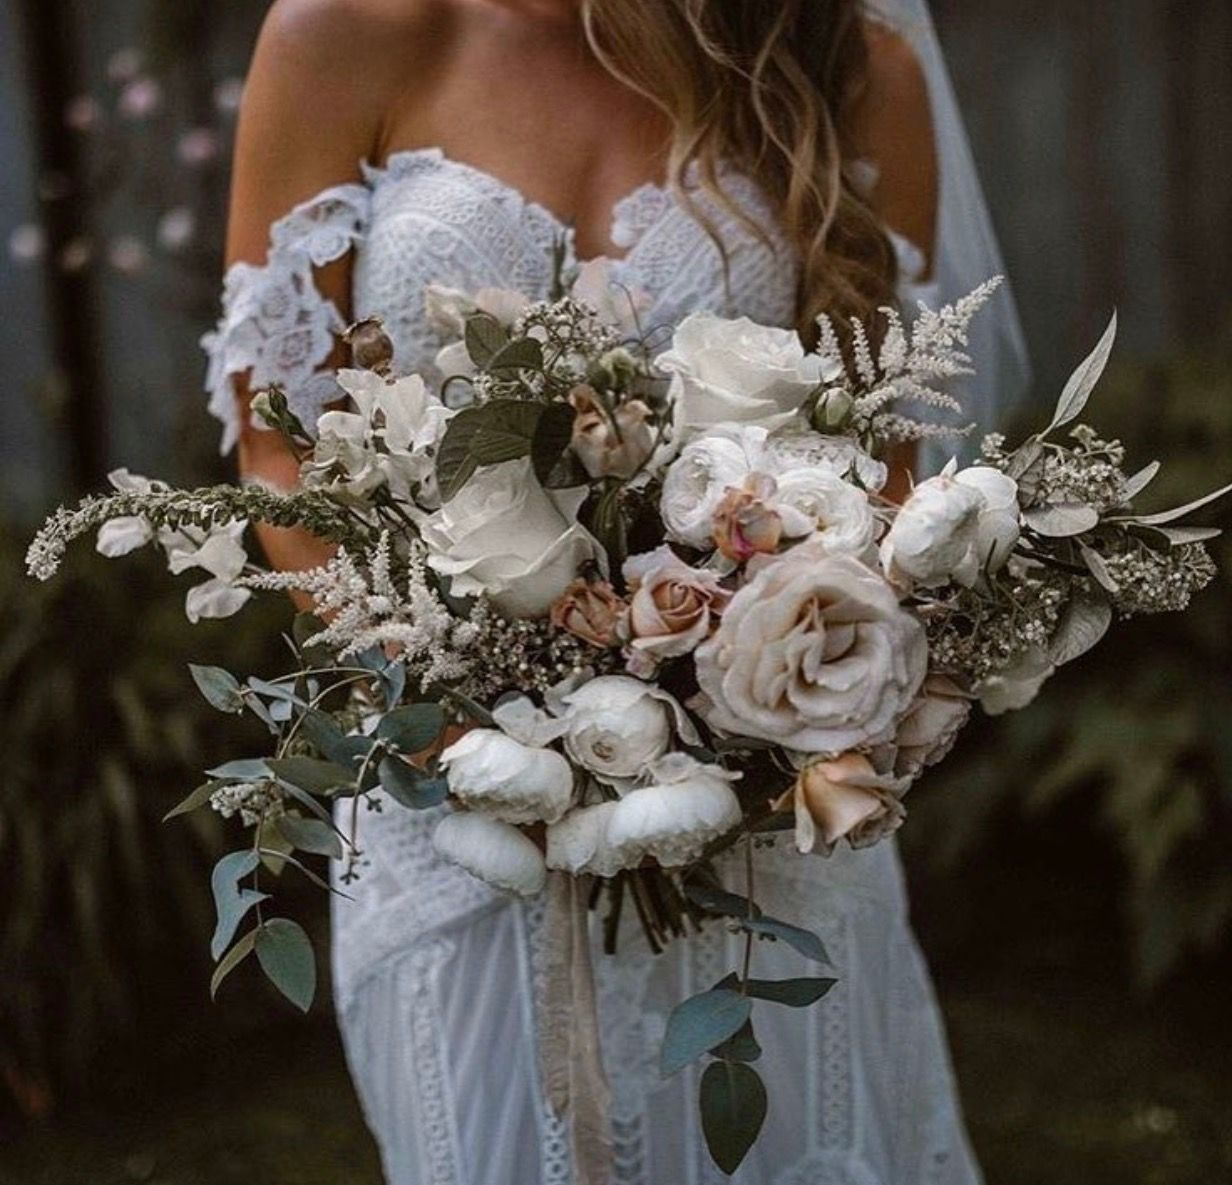 Wedding Flowers By Annette: Pin By Emma Annette On Wedding In 2019